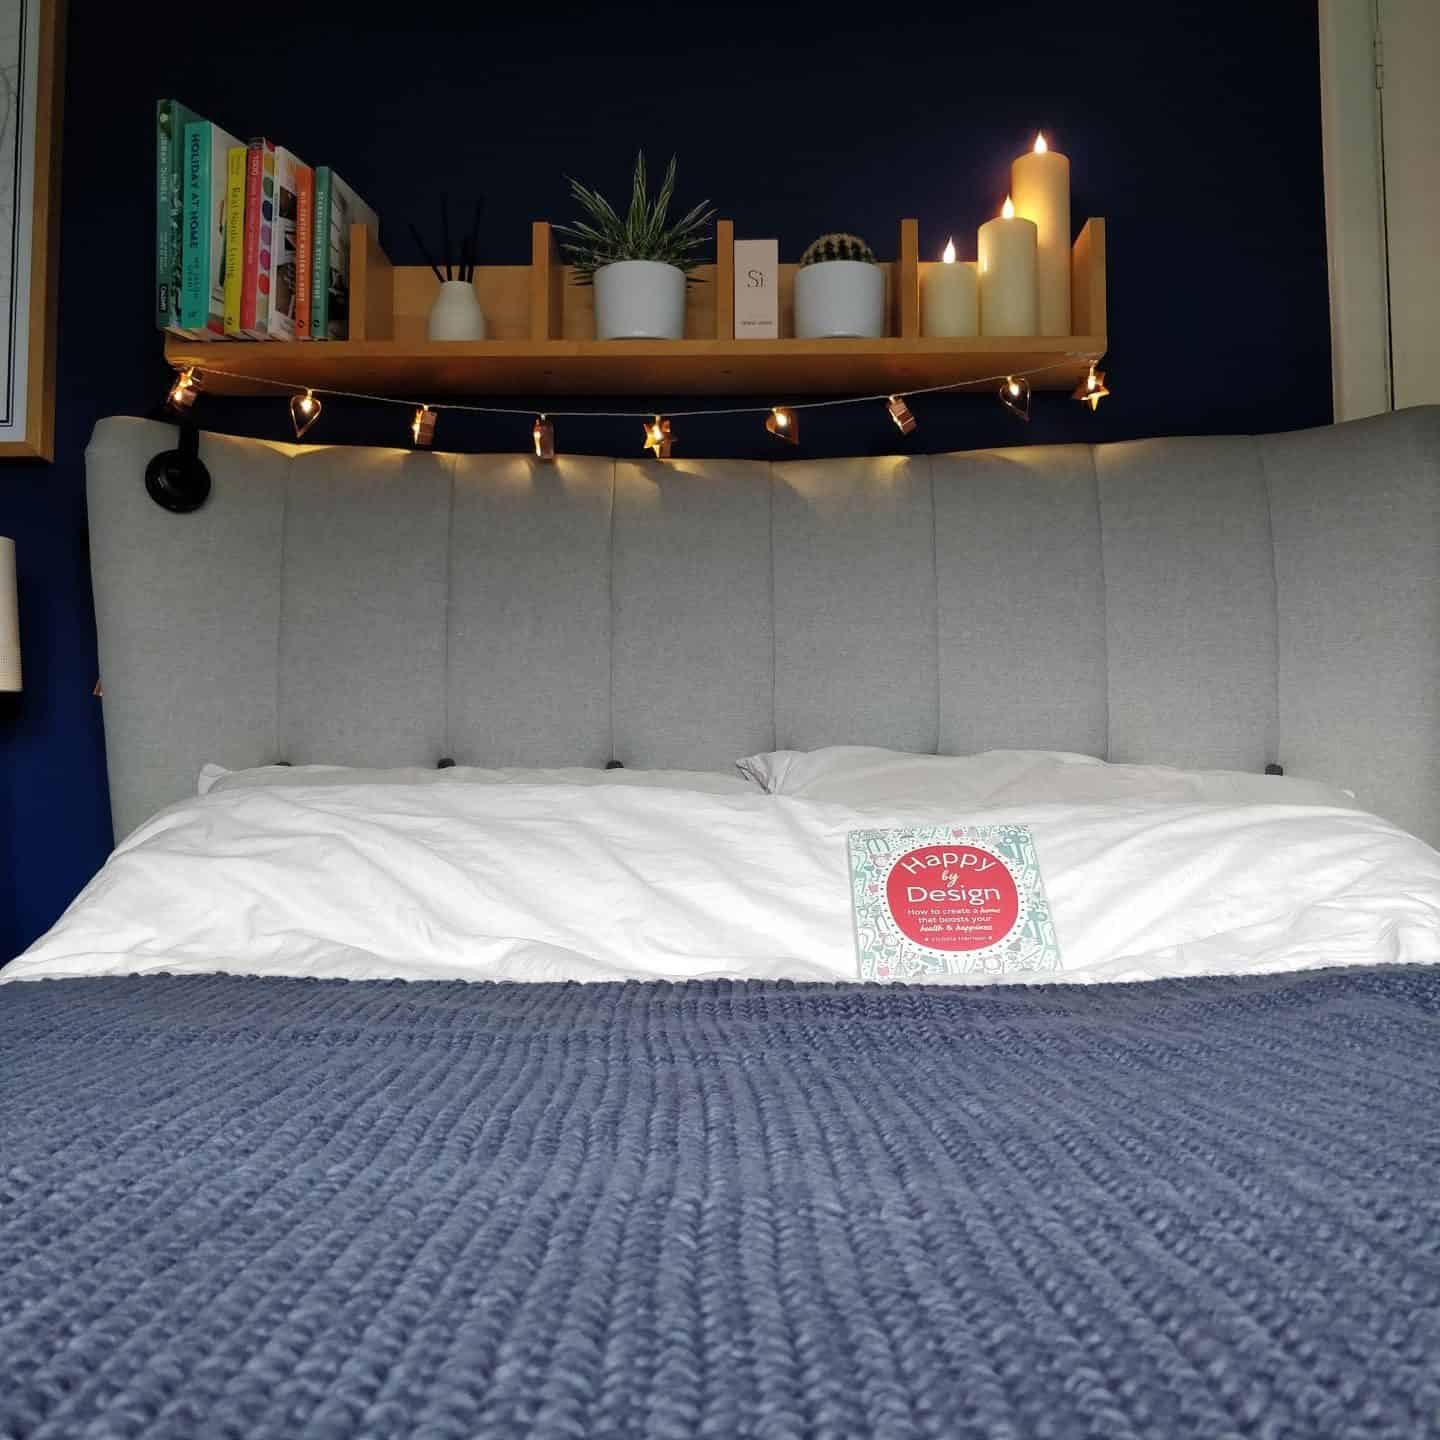 Realistic LED candles from Candled on a bedroom shelf 3